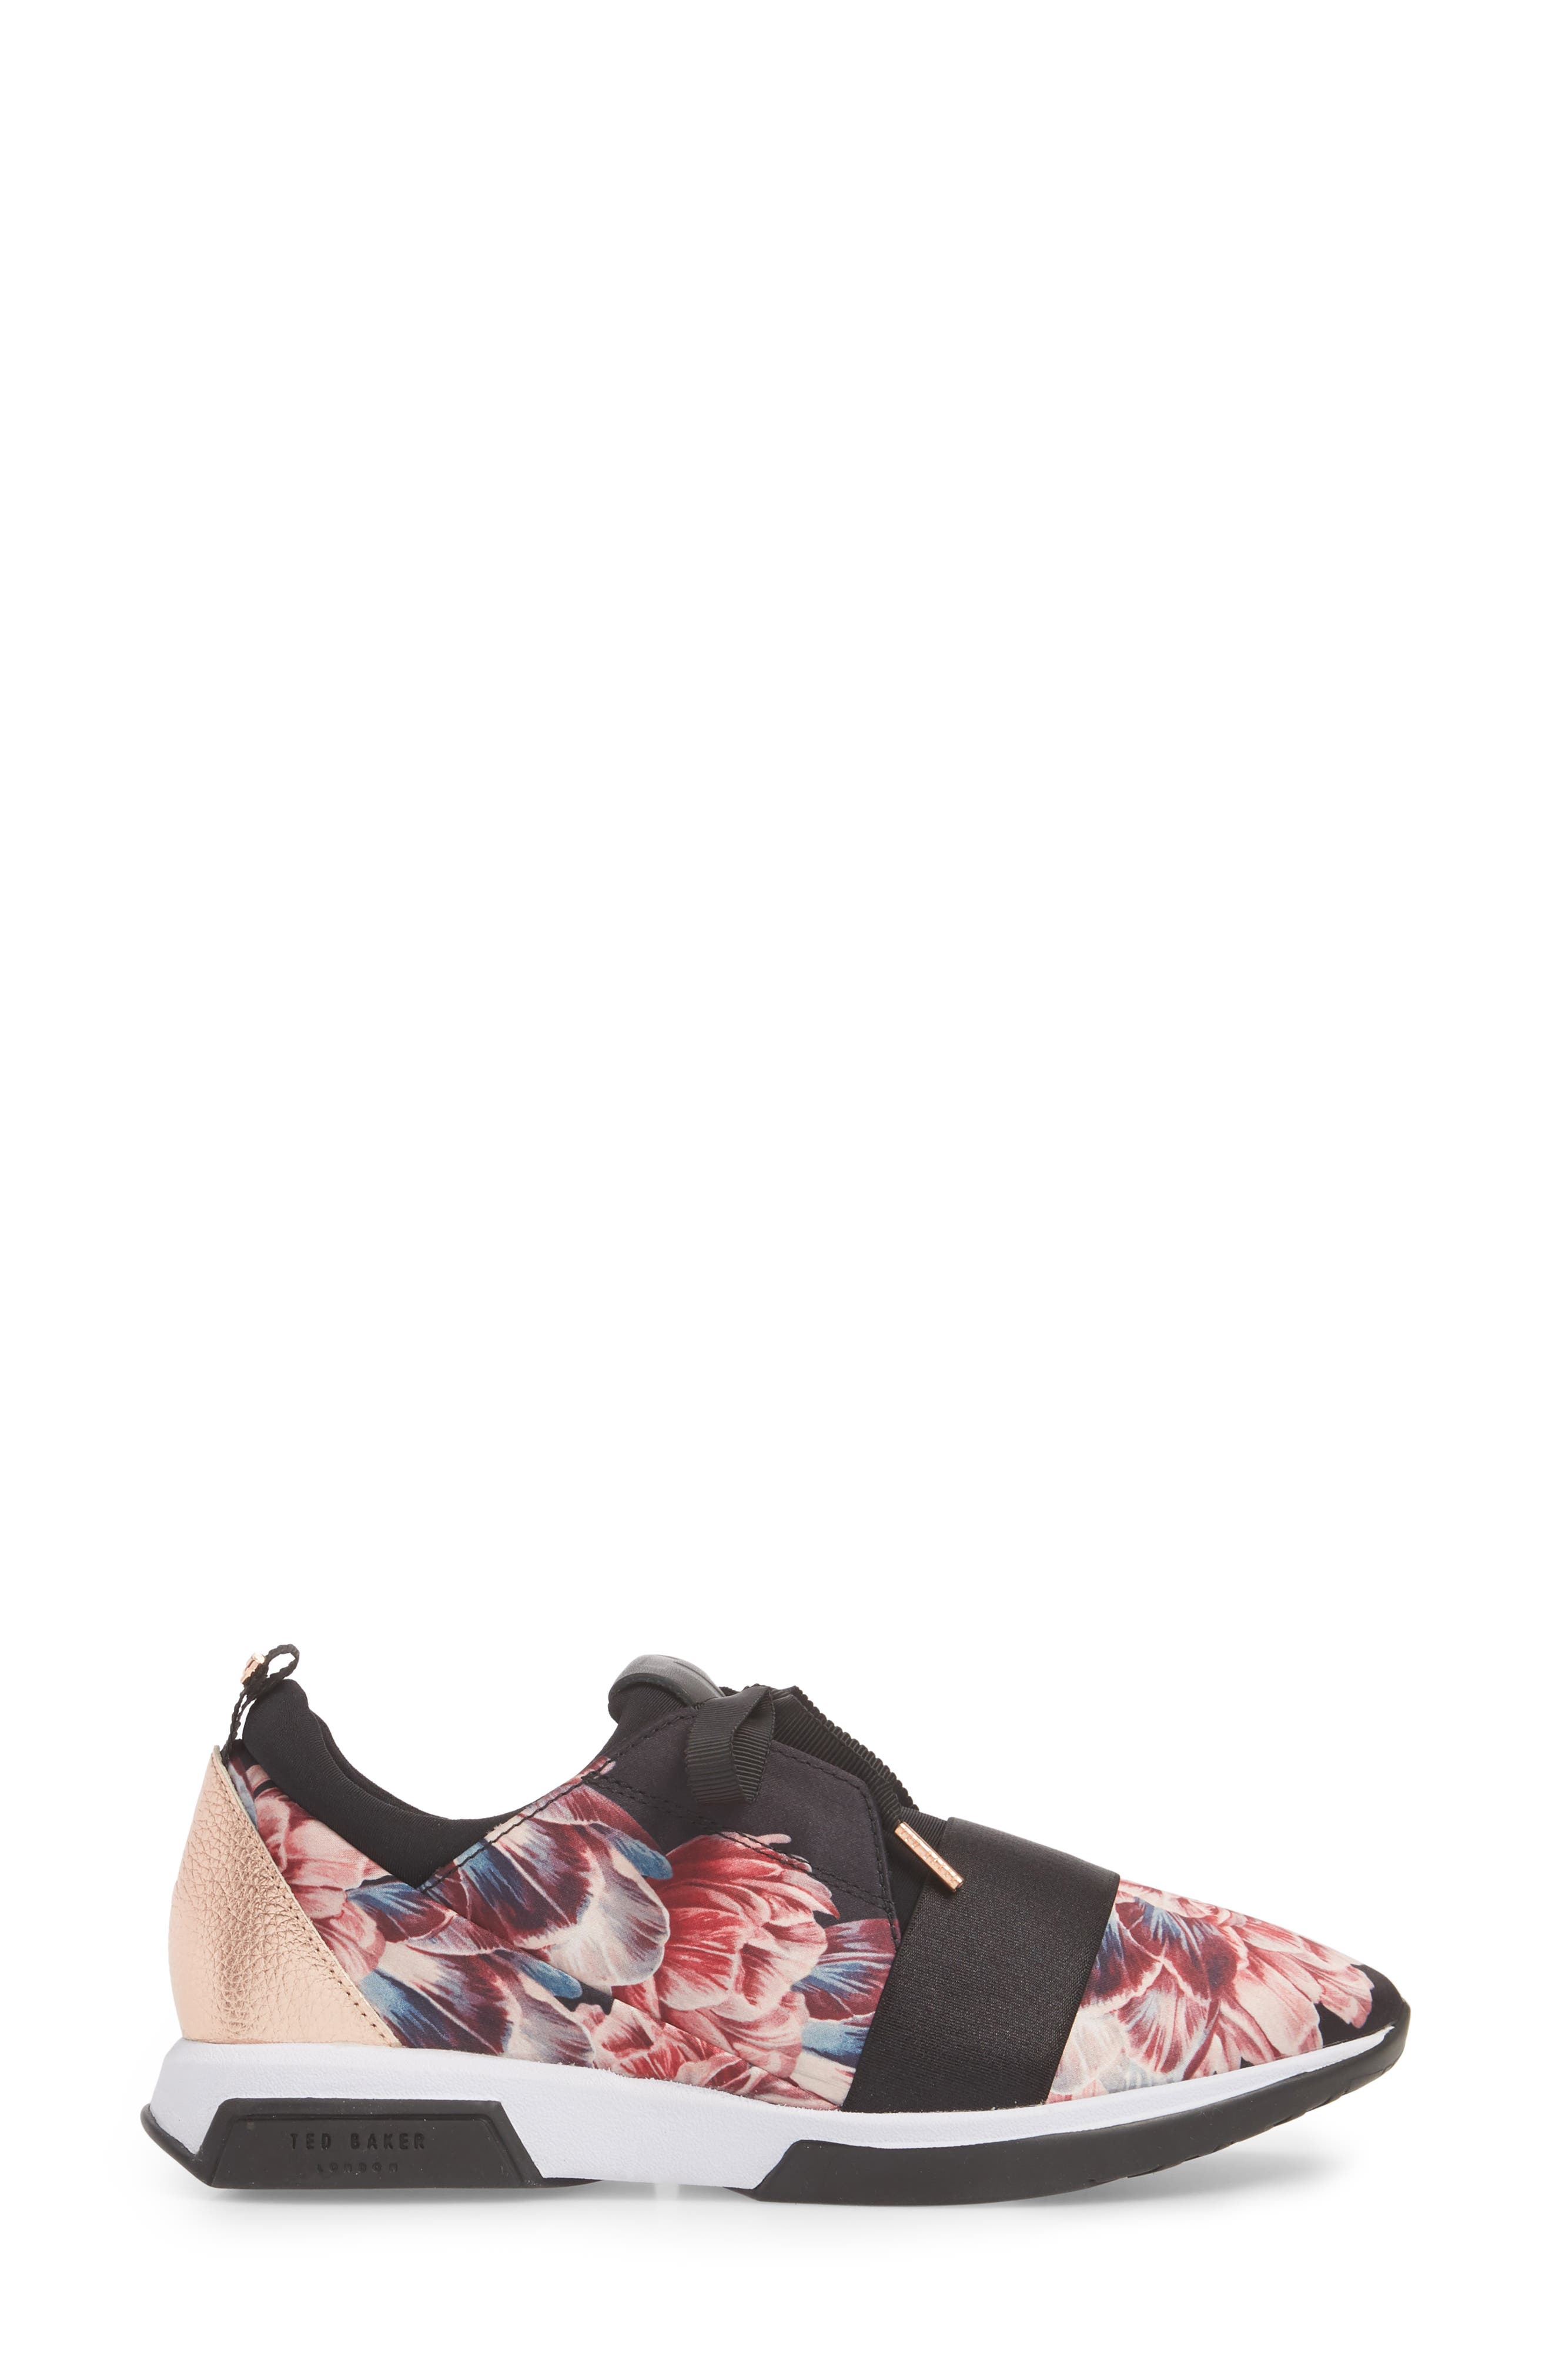 Cepap Sneaker,                             Alternate thumbnail 3, color,                             Tranquility Fabric